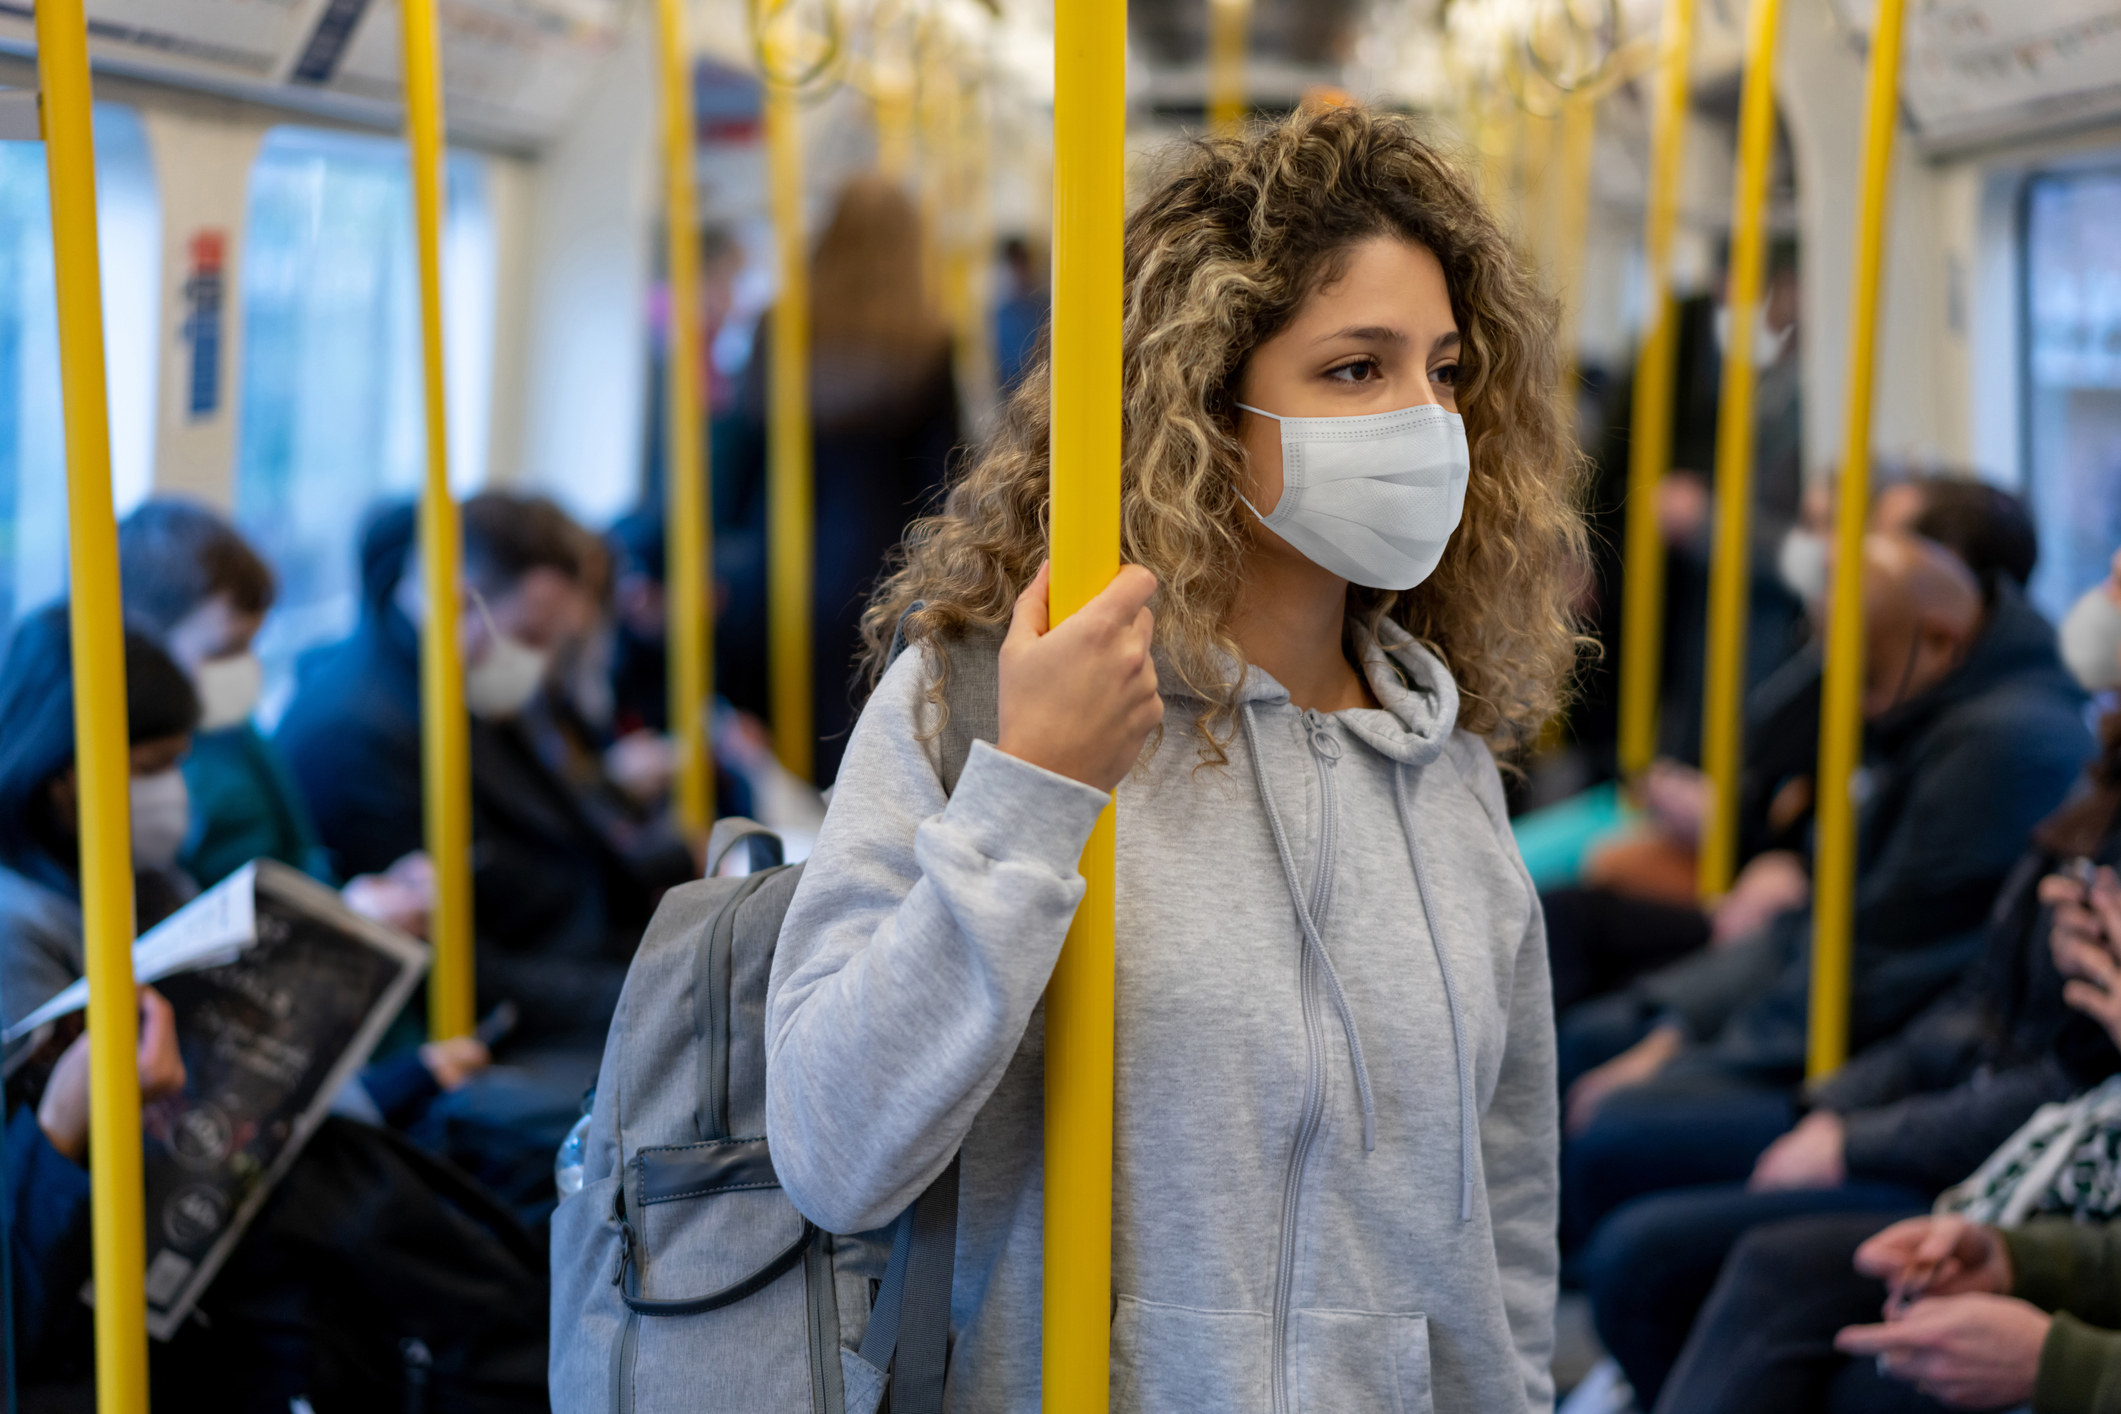 Beautiful young woman riding on the metro wearing a facemask to avoid an infectious disease - COVID-19 lifestyle concepts